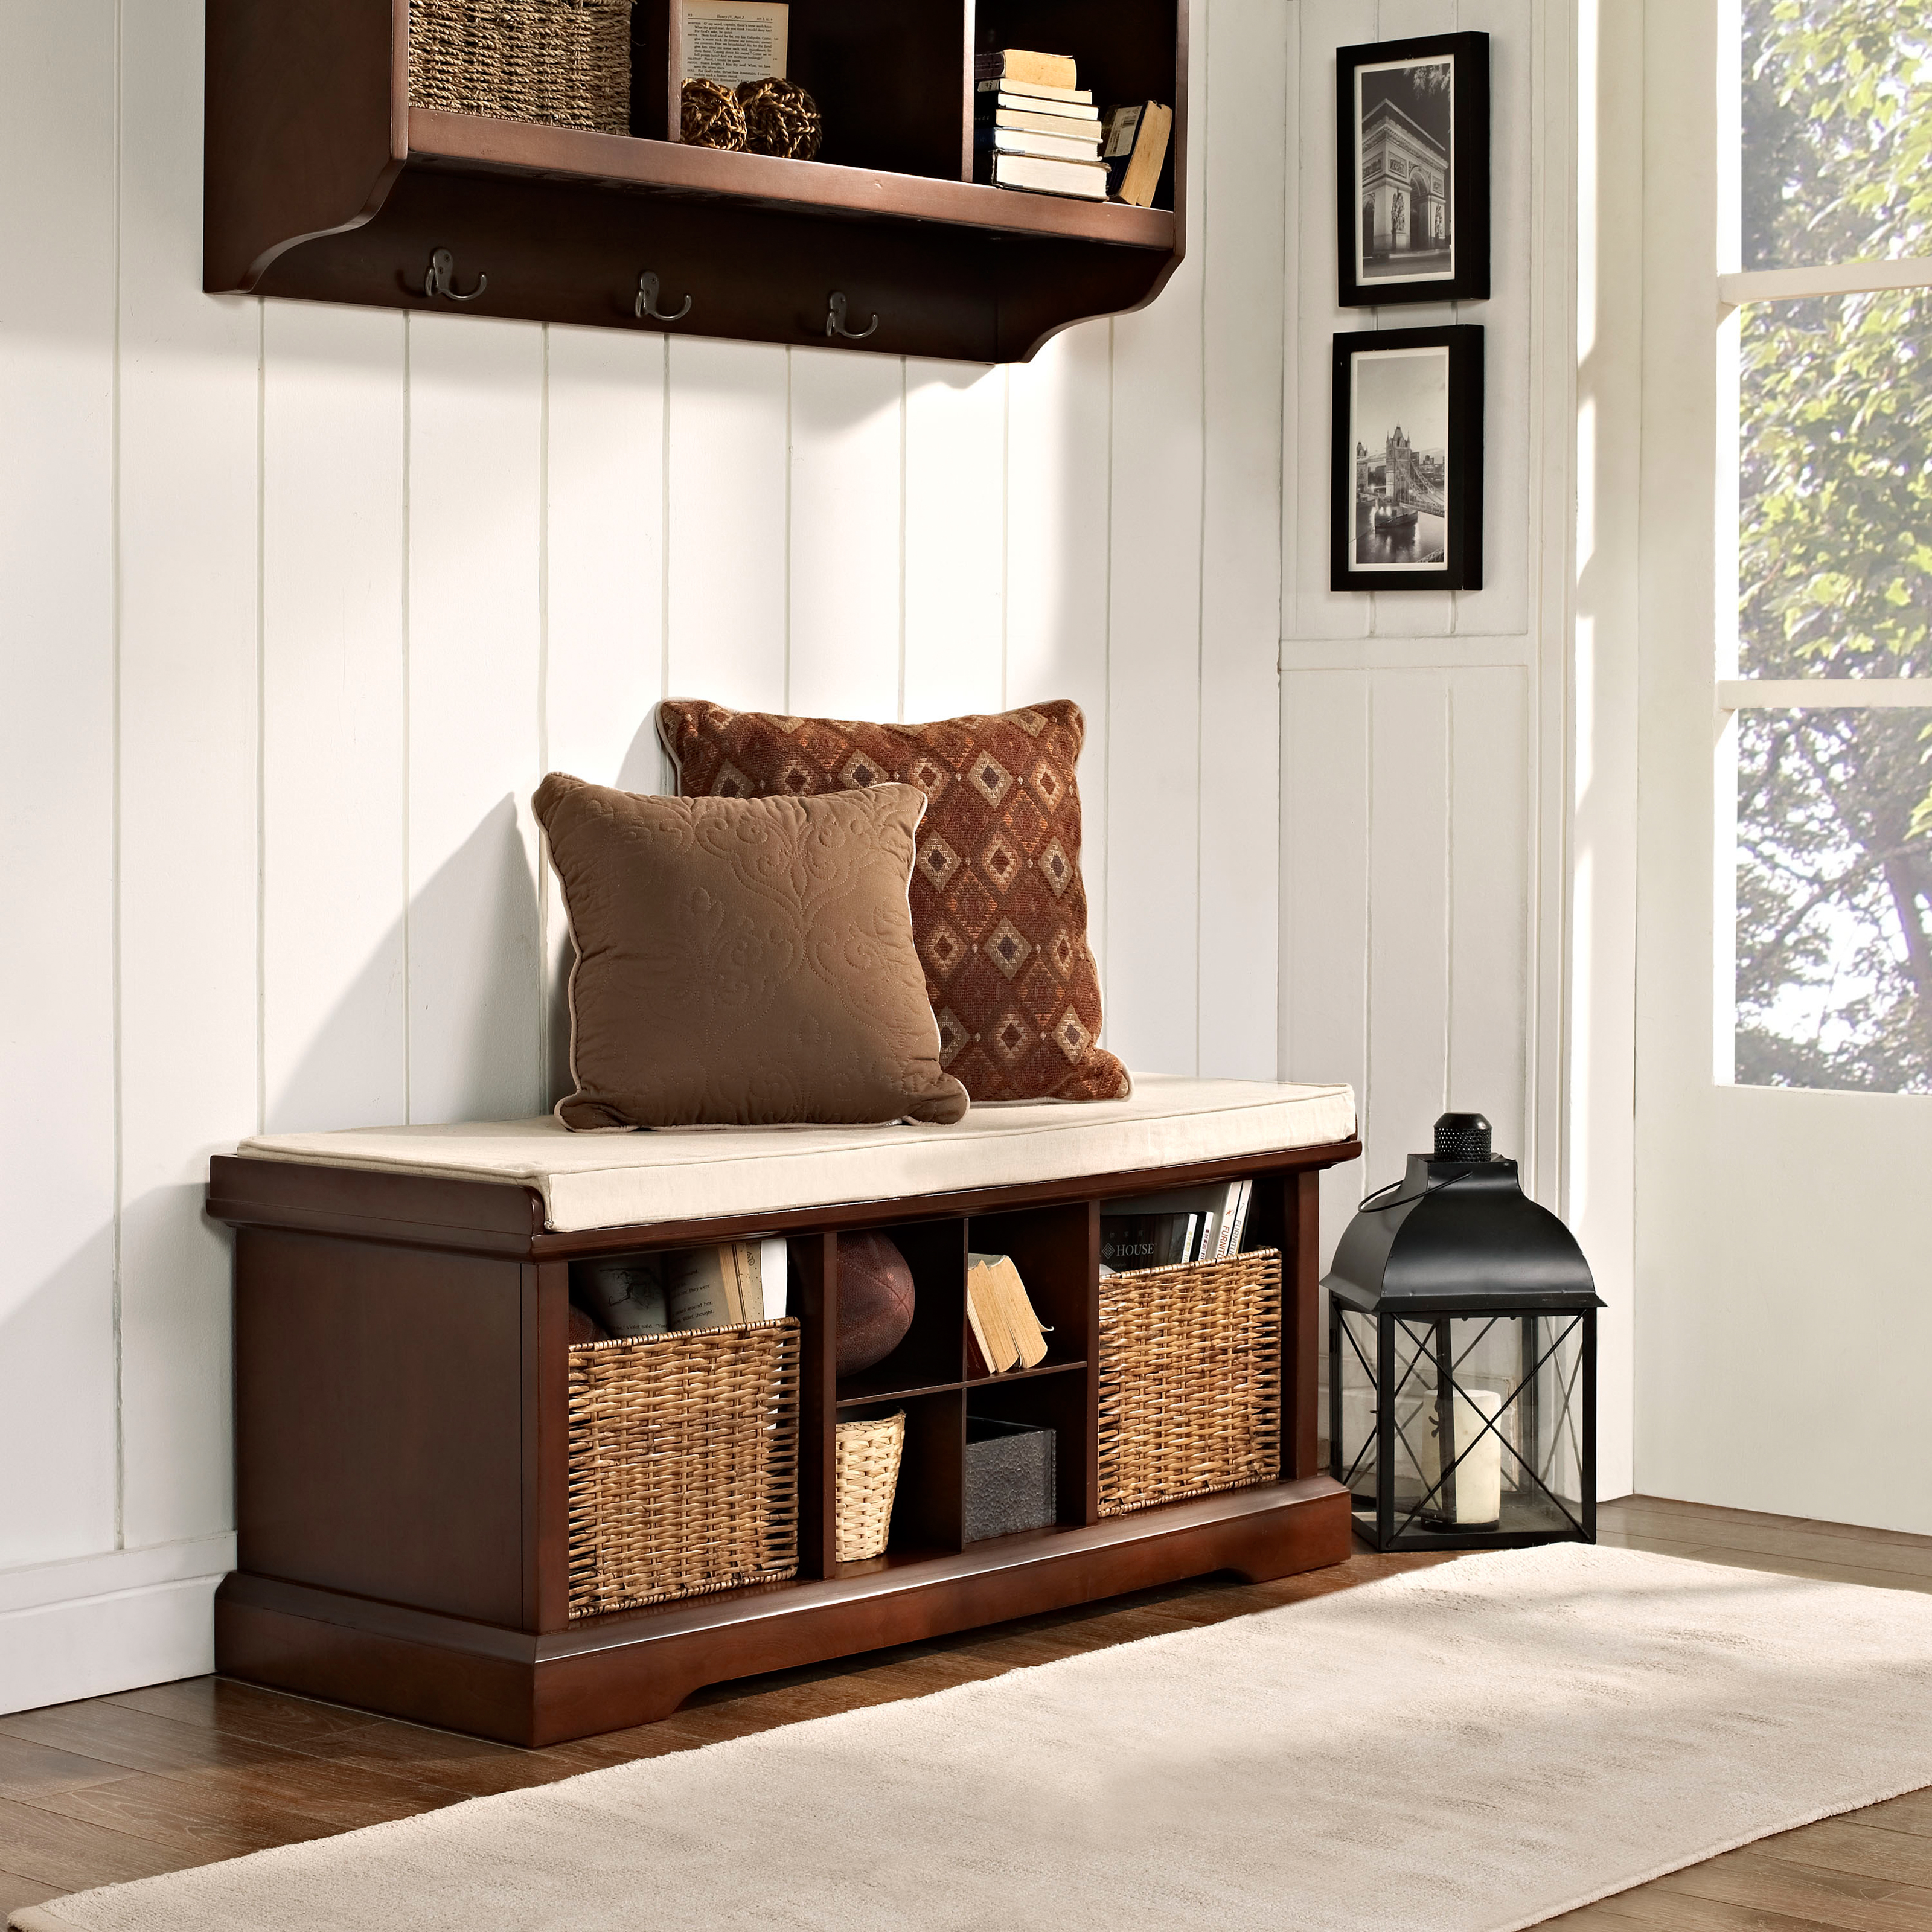 Crosley Brennan Entryway Storage Bench Mahogany Indoor  : masterCRY467 from www.hayneedle.com size 3200 x 3200 jpeg 1293kB